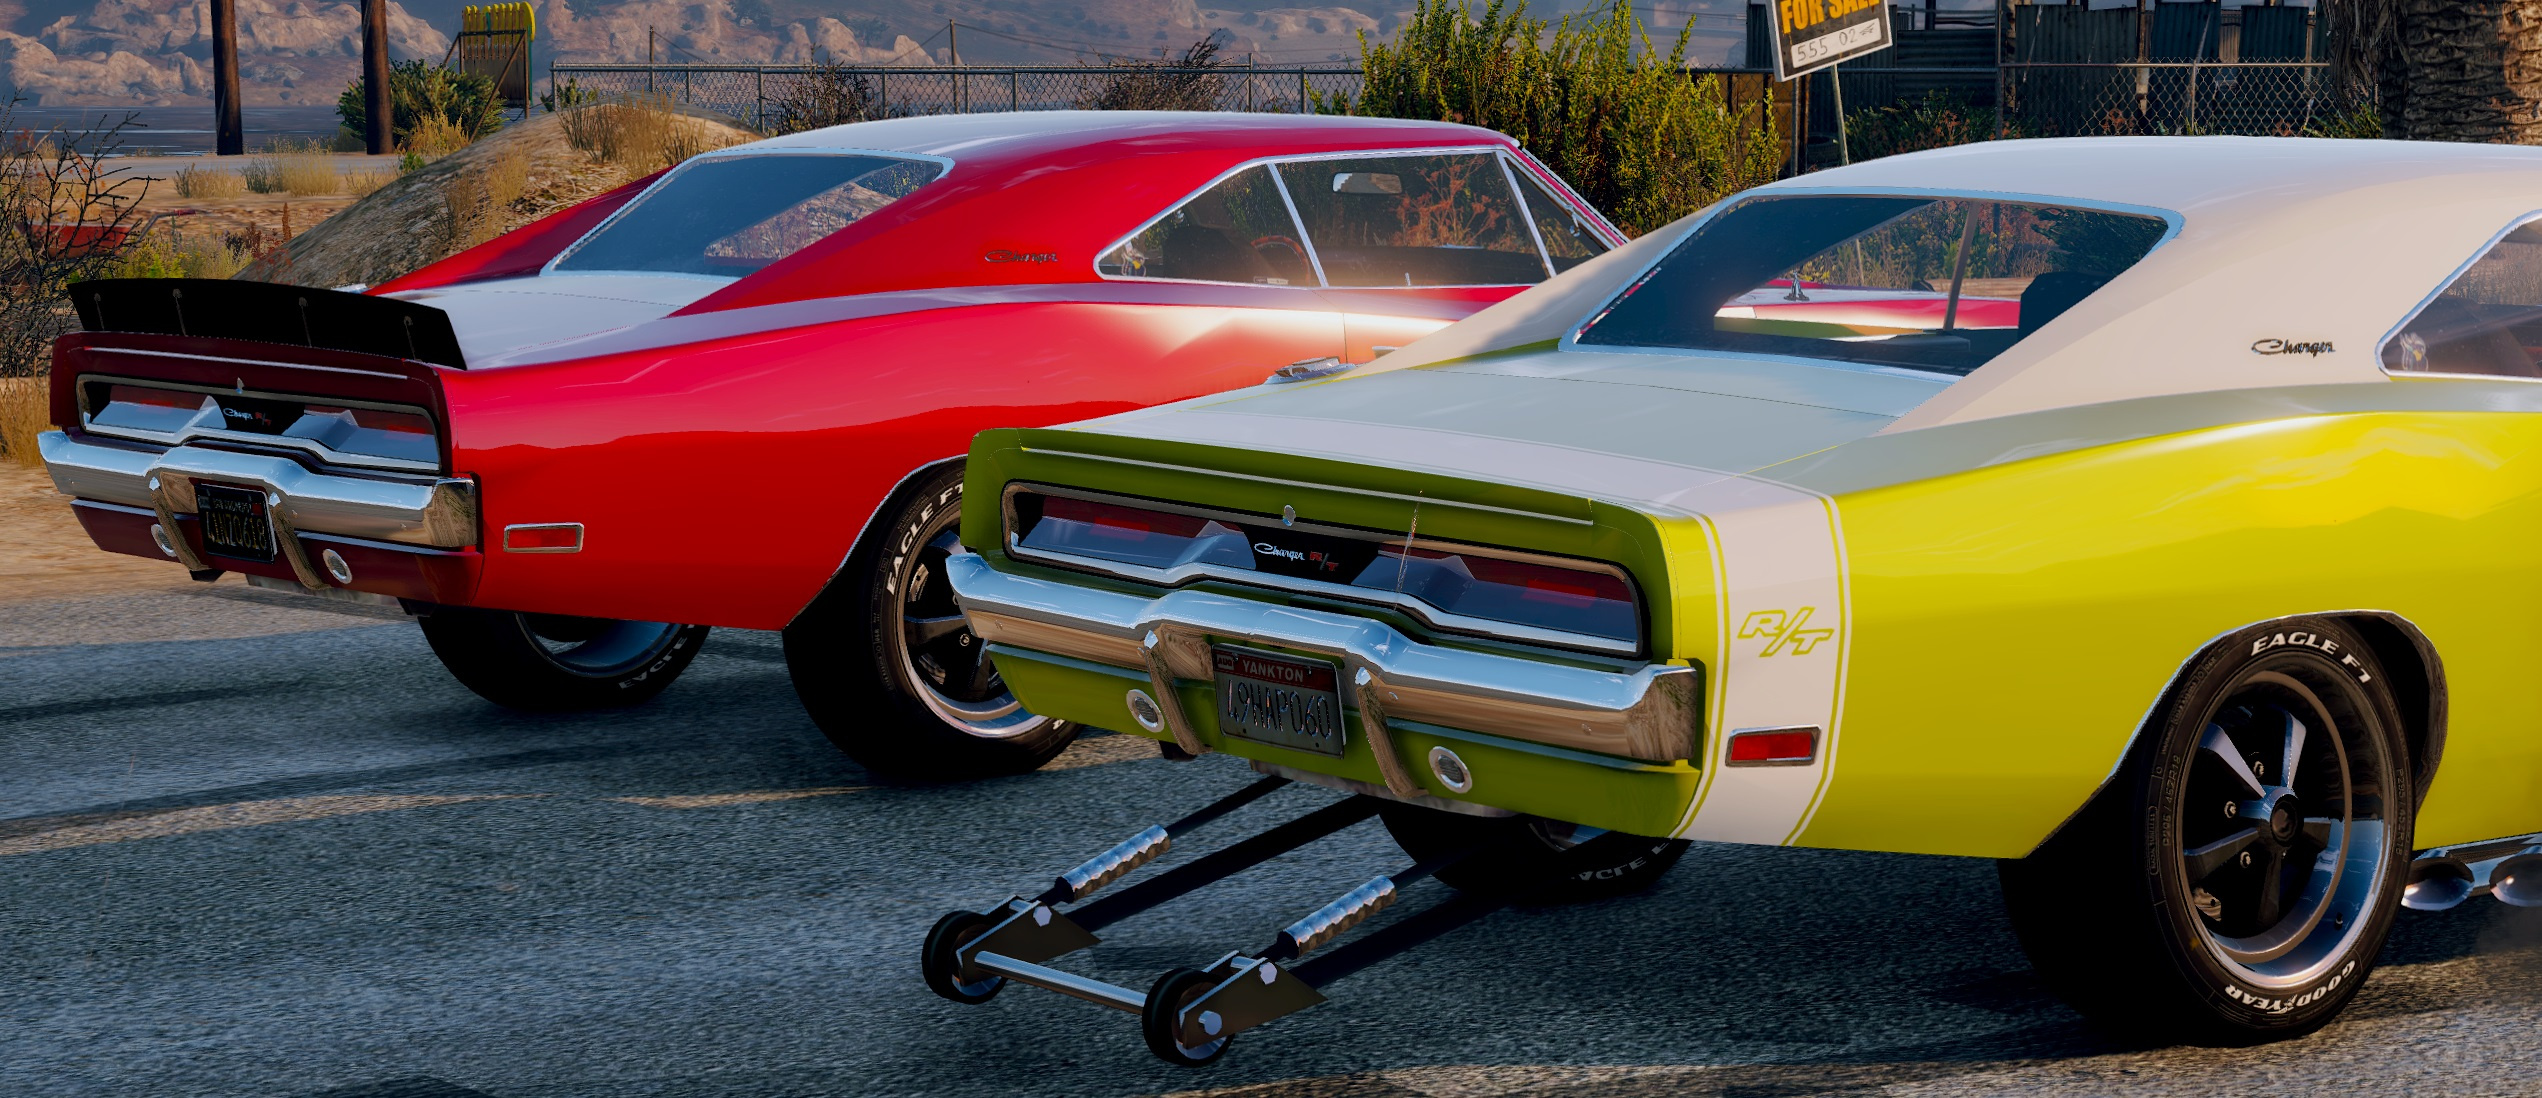 1970 Dodge Charger R T Tuning 1968 General Lee B9934f Gta5 2015 10 17 19 56 41